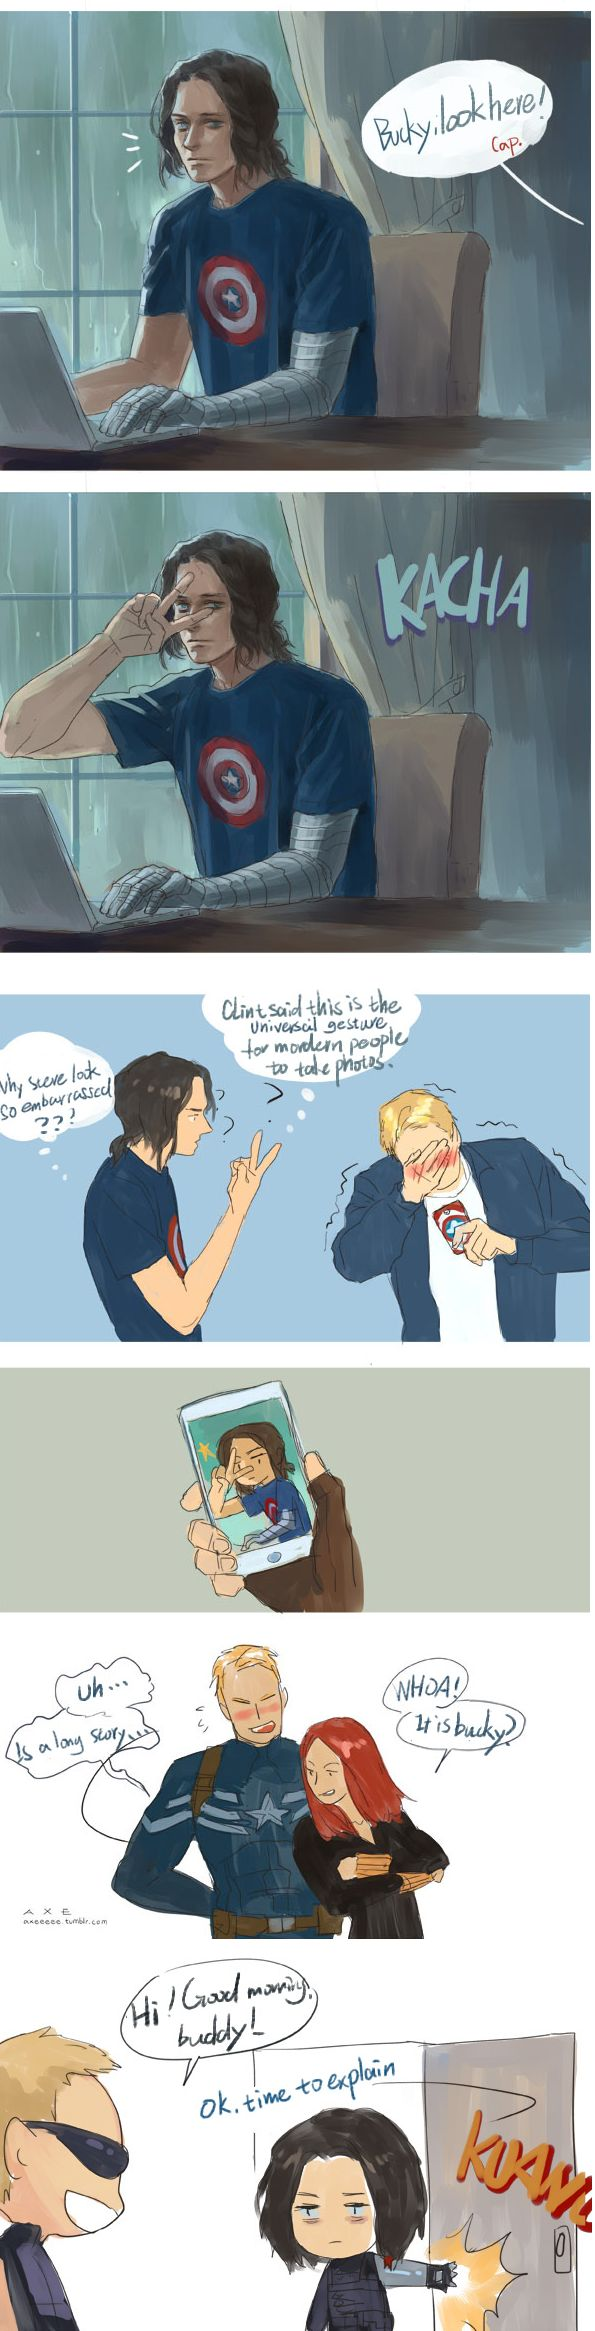 """-So, I'm not really sure if I got it right, but I'm guessing Bucky is so cute that it got Steve flustered?? --- Not exactly hehehe! Clint might have instructed Bucky in the gesture of the """"fierce"""" sign and everyone thinks it's absolutely hilarious!-  Oh!  He's trying not to laugh then. Okay!  Thank you!"""